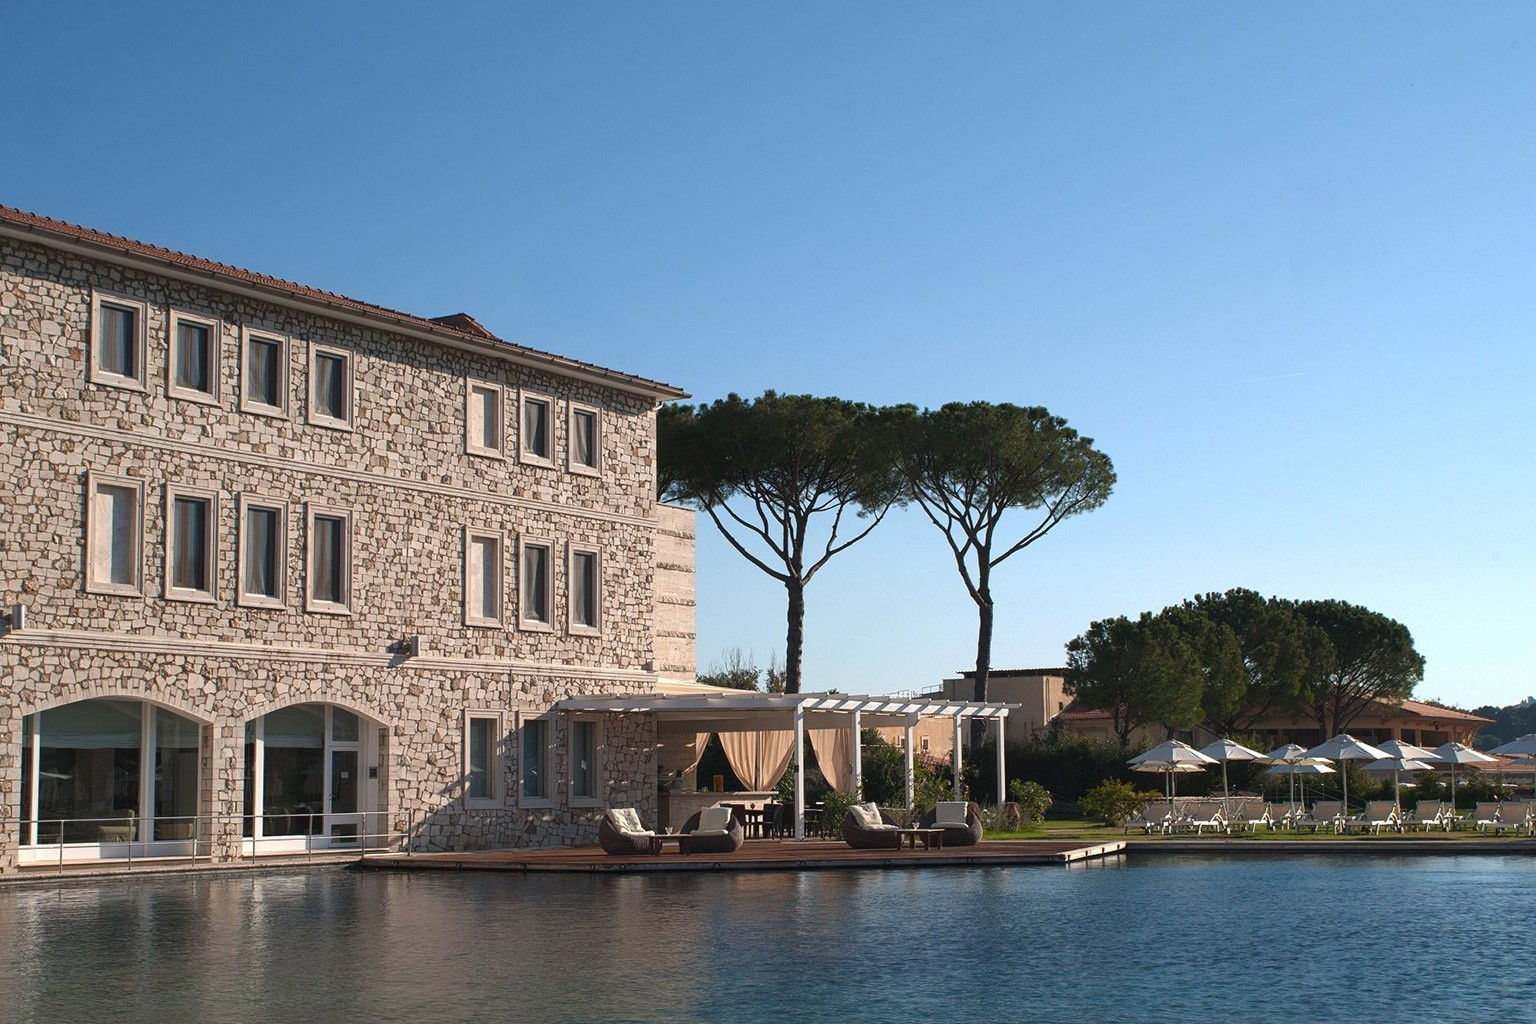 terme di saturnia spa golf resort designreisen